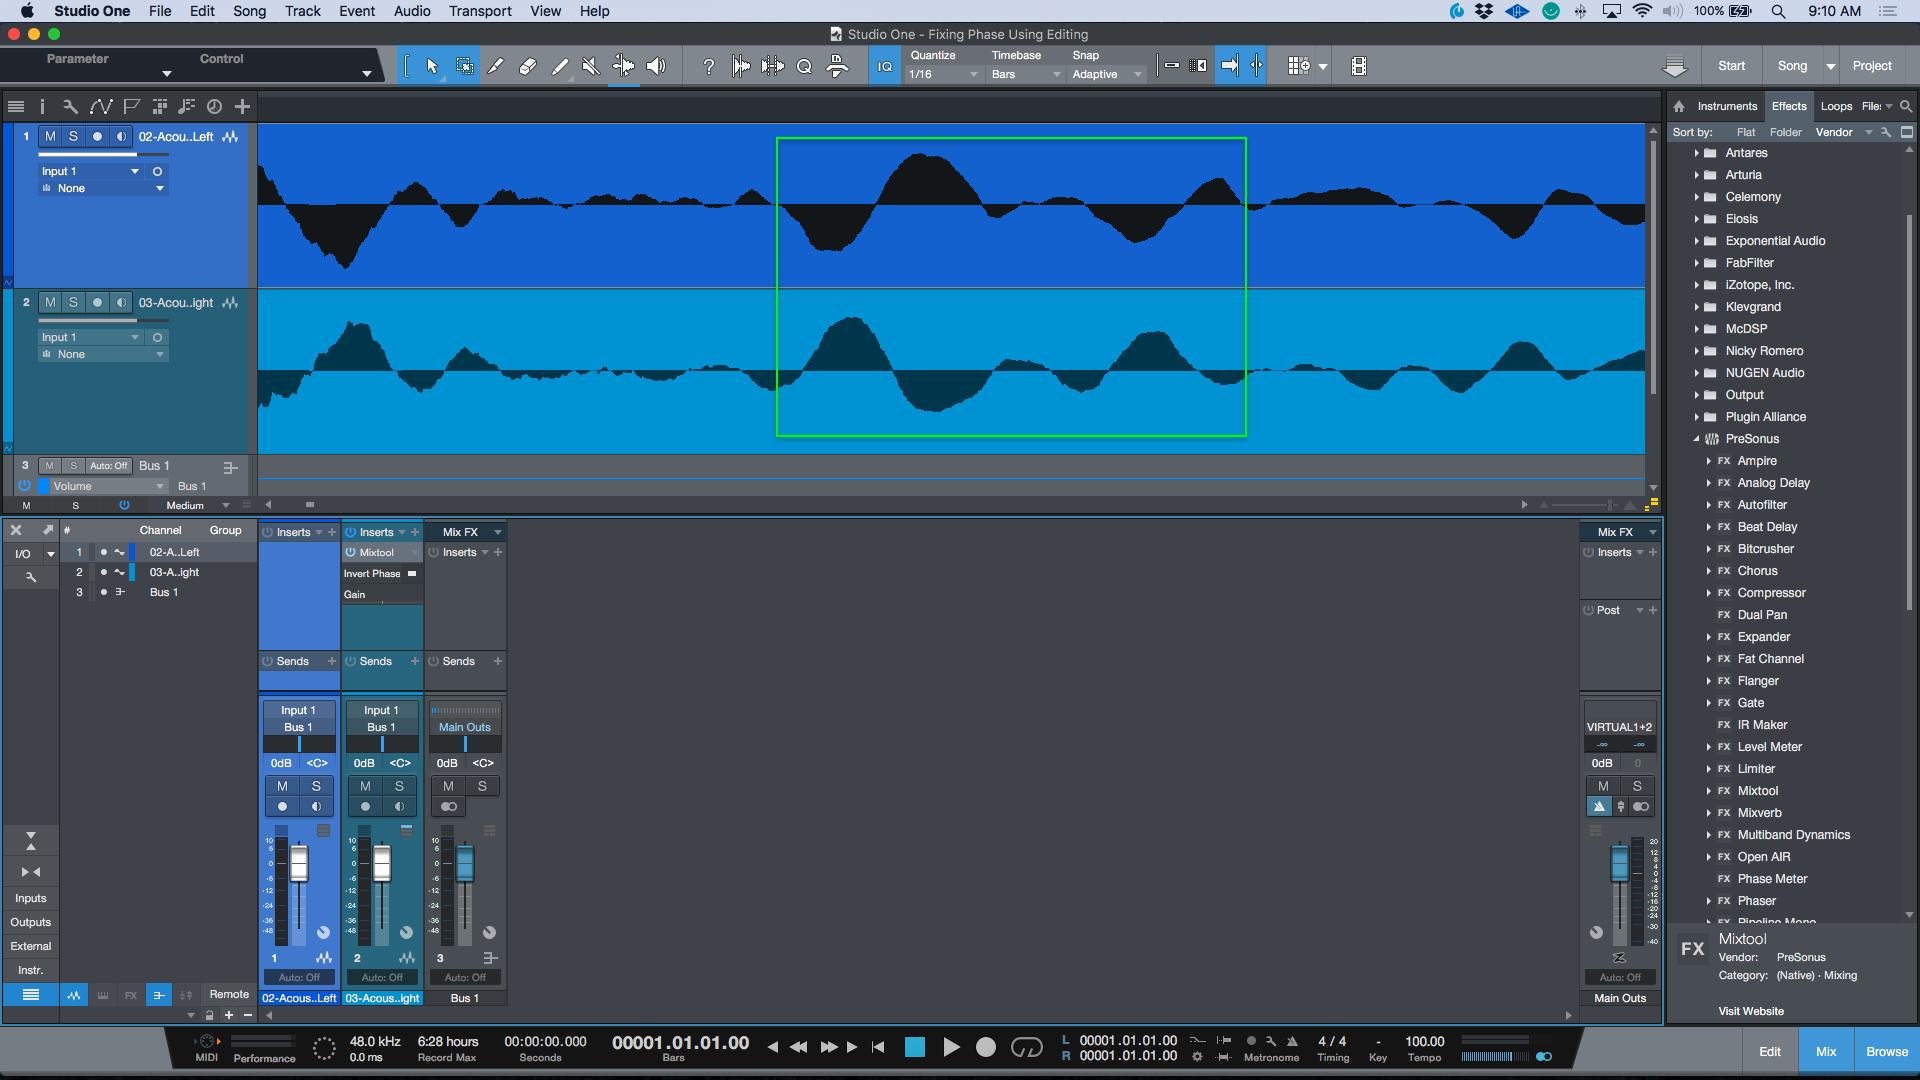 Note that the Waveforms are heading in exact opposite directions - and hence 180 degrees out of phase with each other.